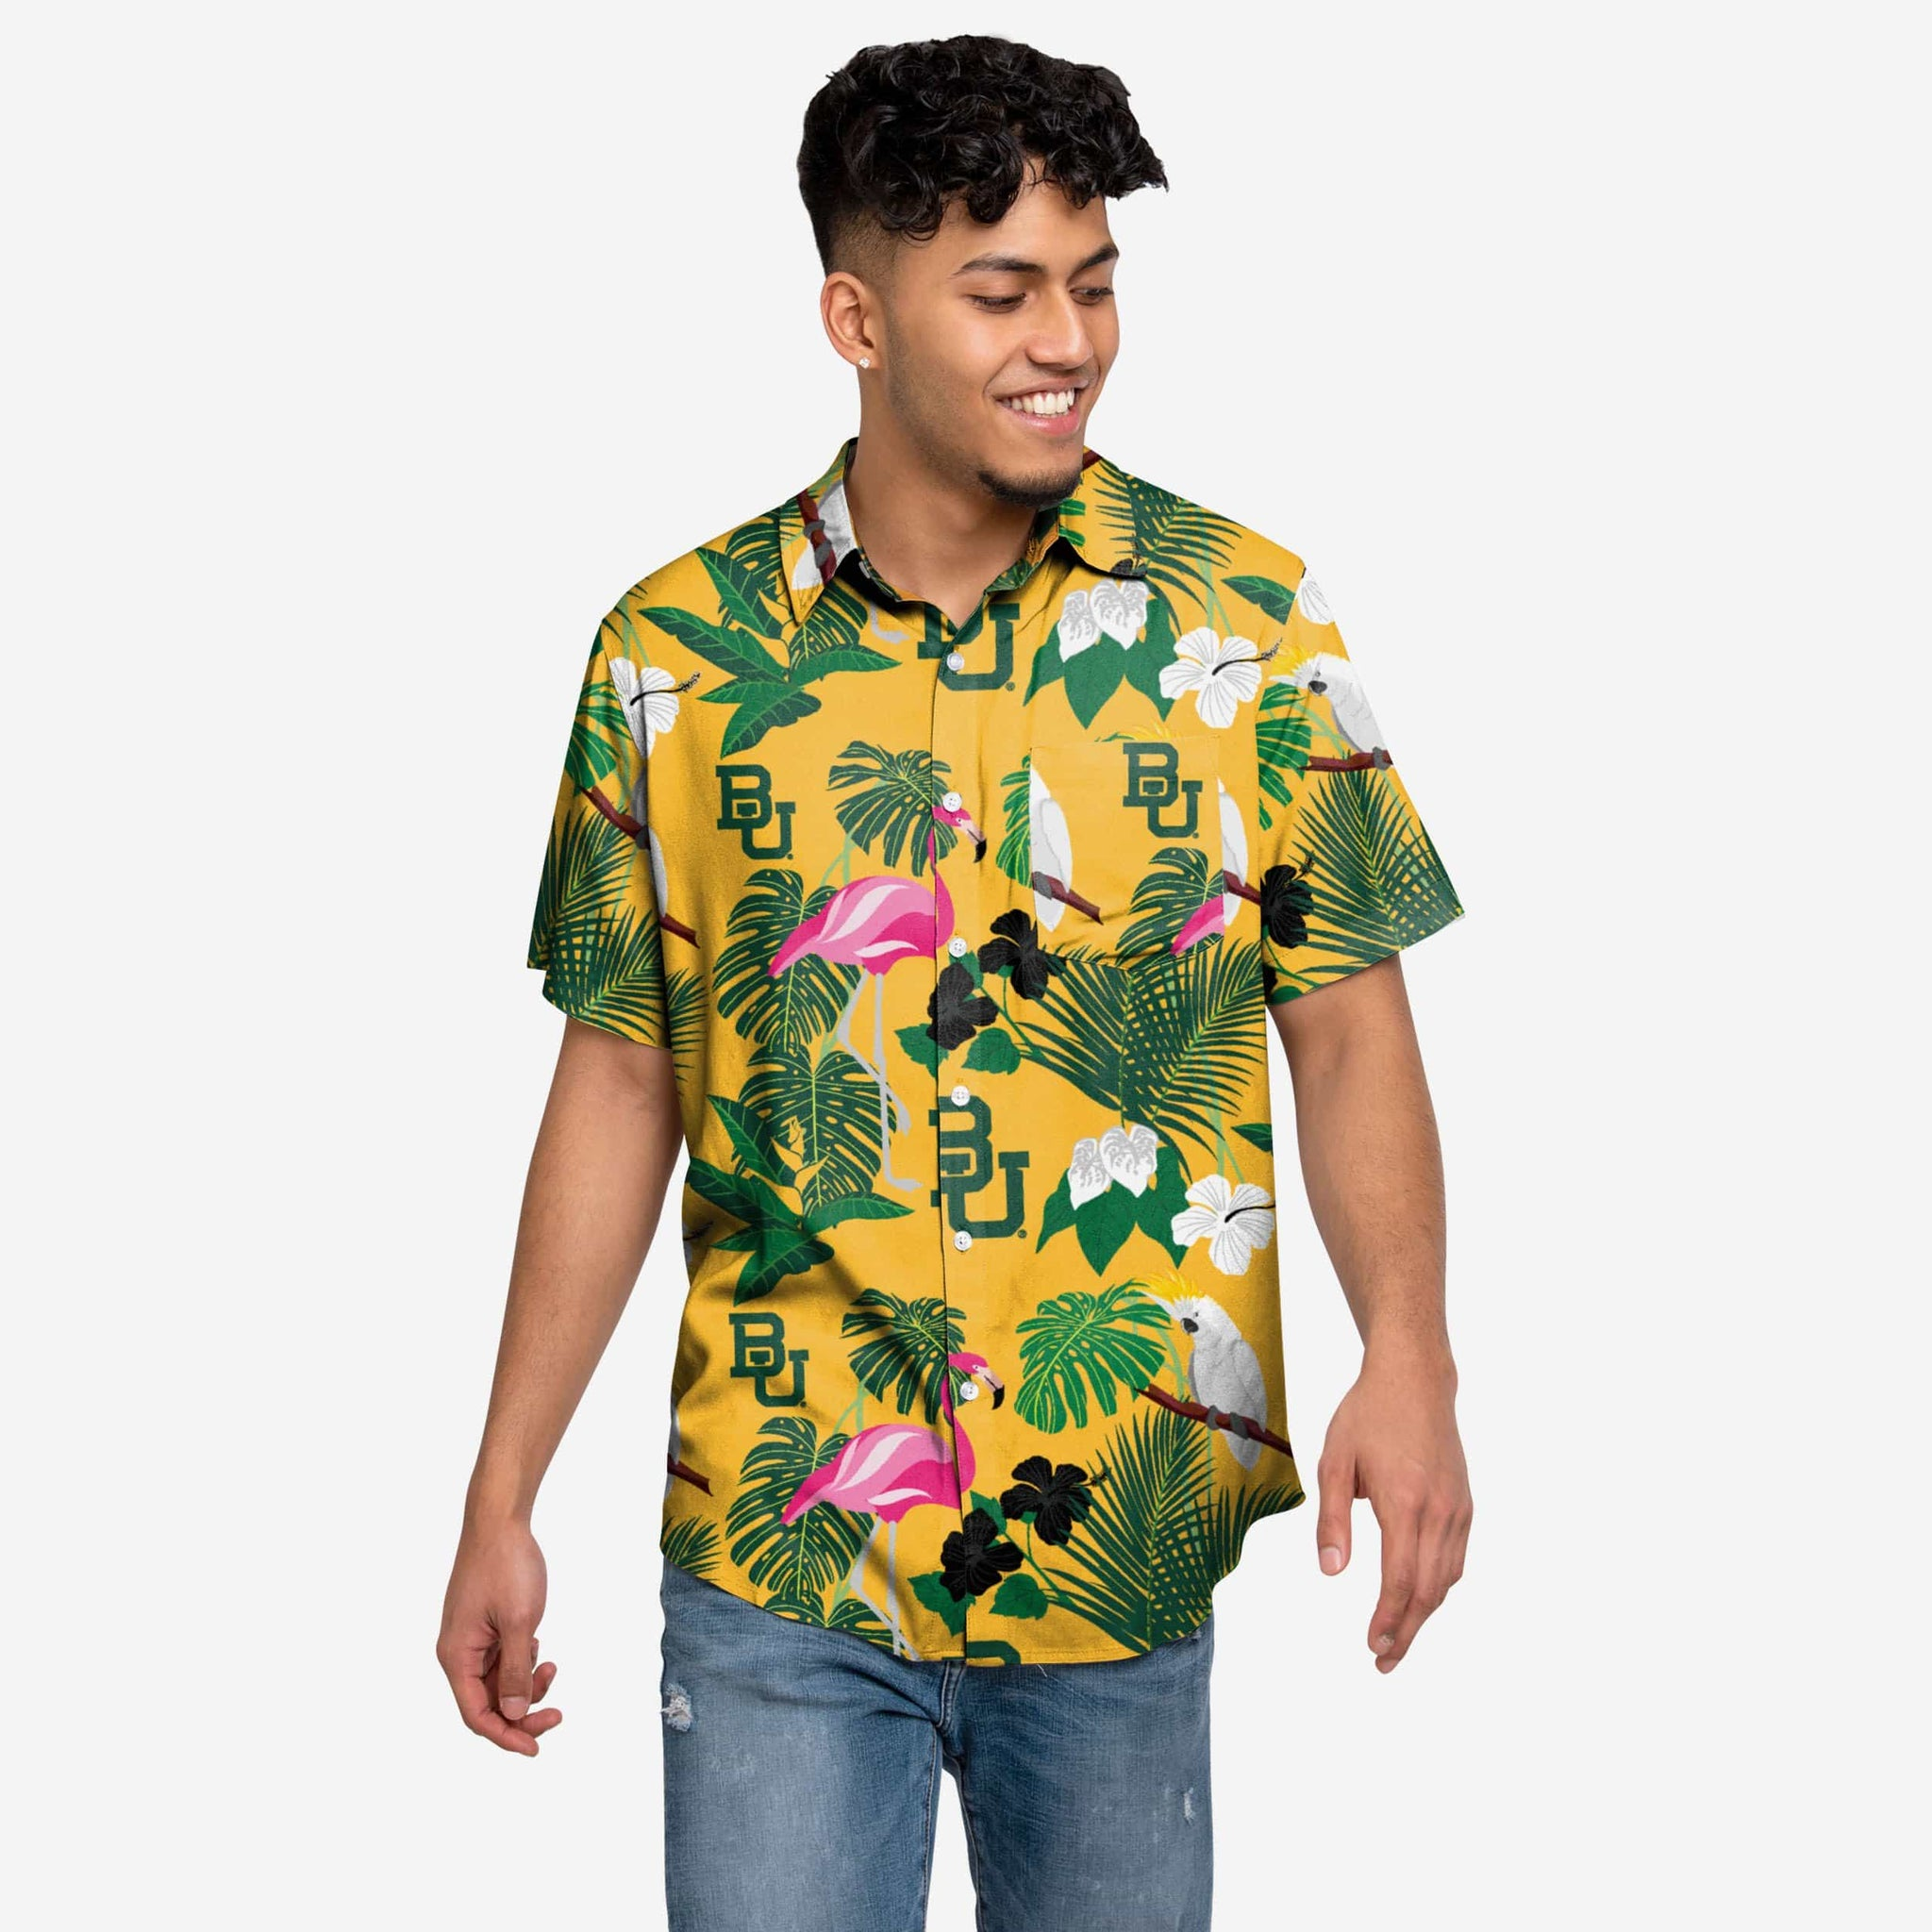 Baylor Bears Floral Button Up Shirt